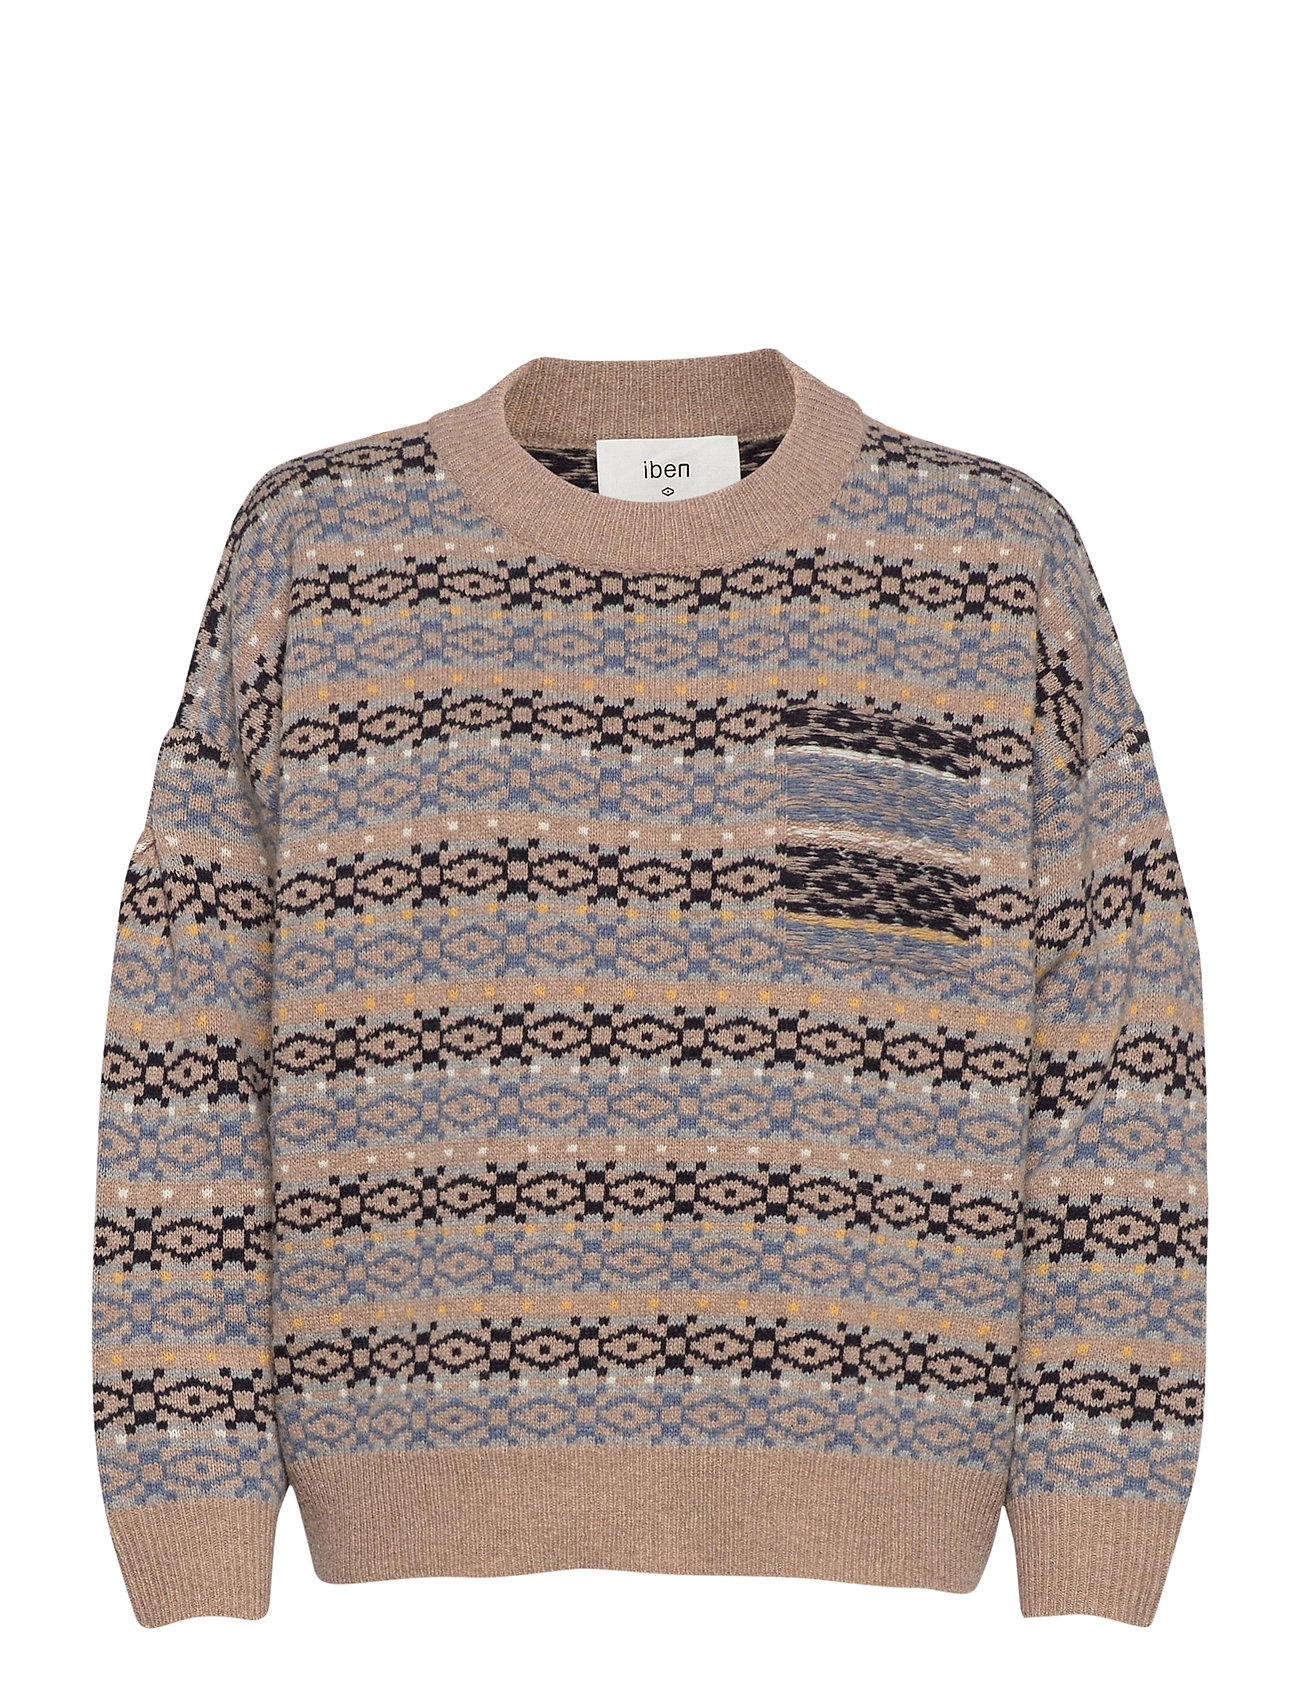 Image of Ean Sweater Wrp Strikket Trøje Blå IBEN (3459863135)